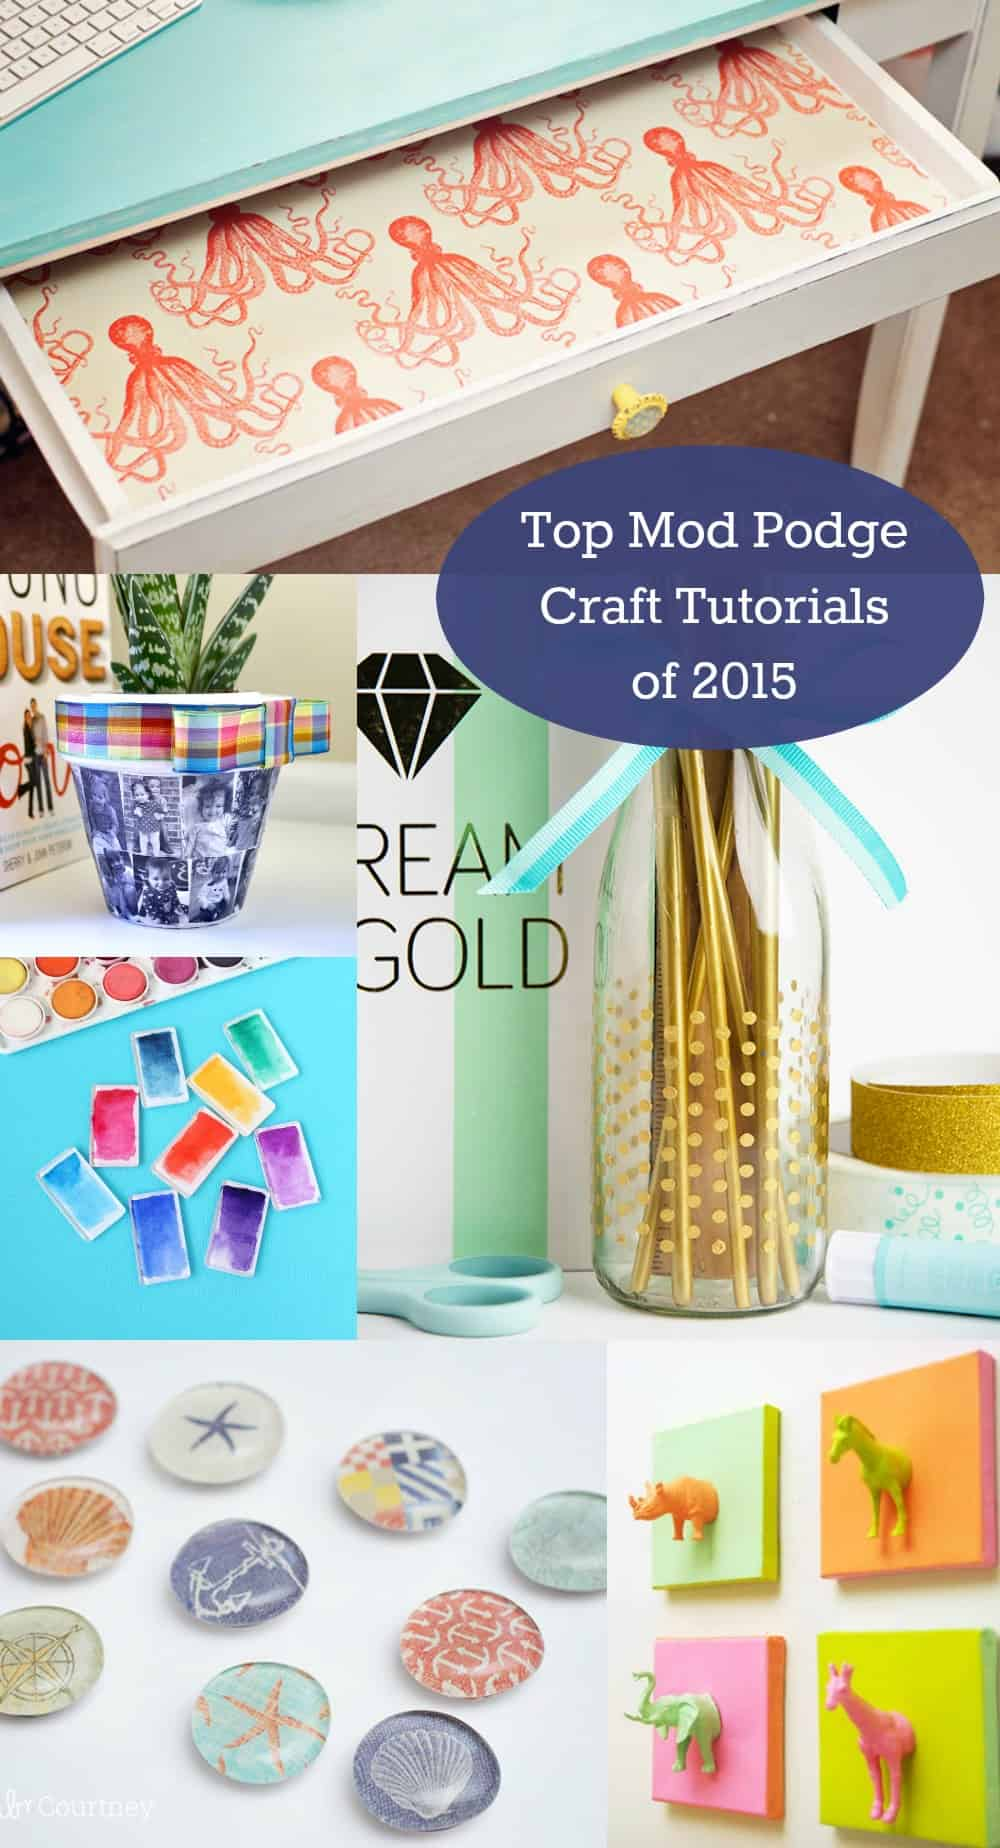 Top 10 Mod Podge Craft Tutorials of 2015